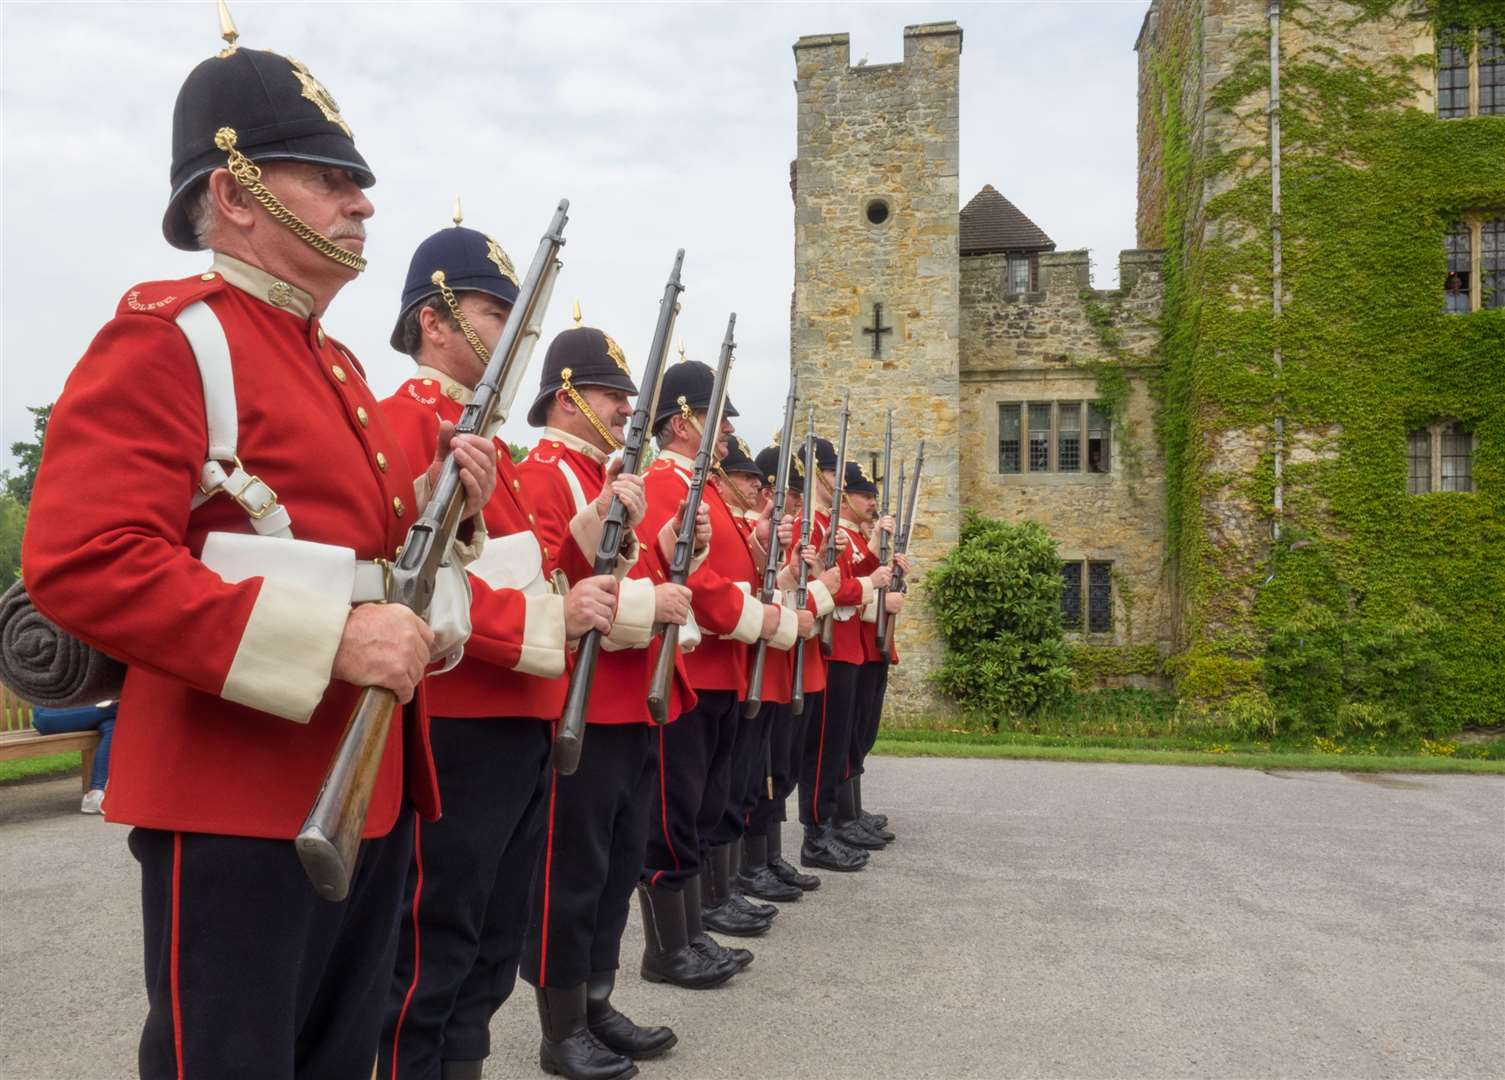 Edwardian life at Hever Castle this half term